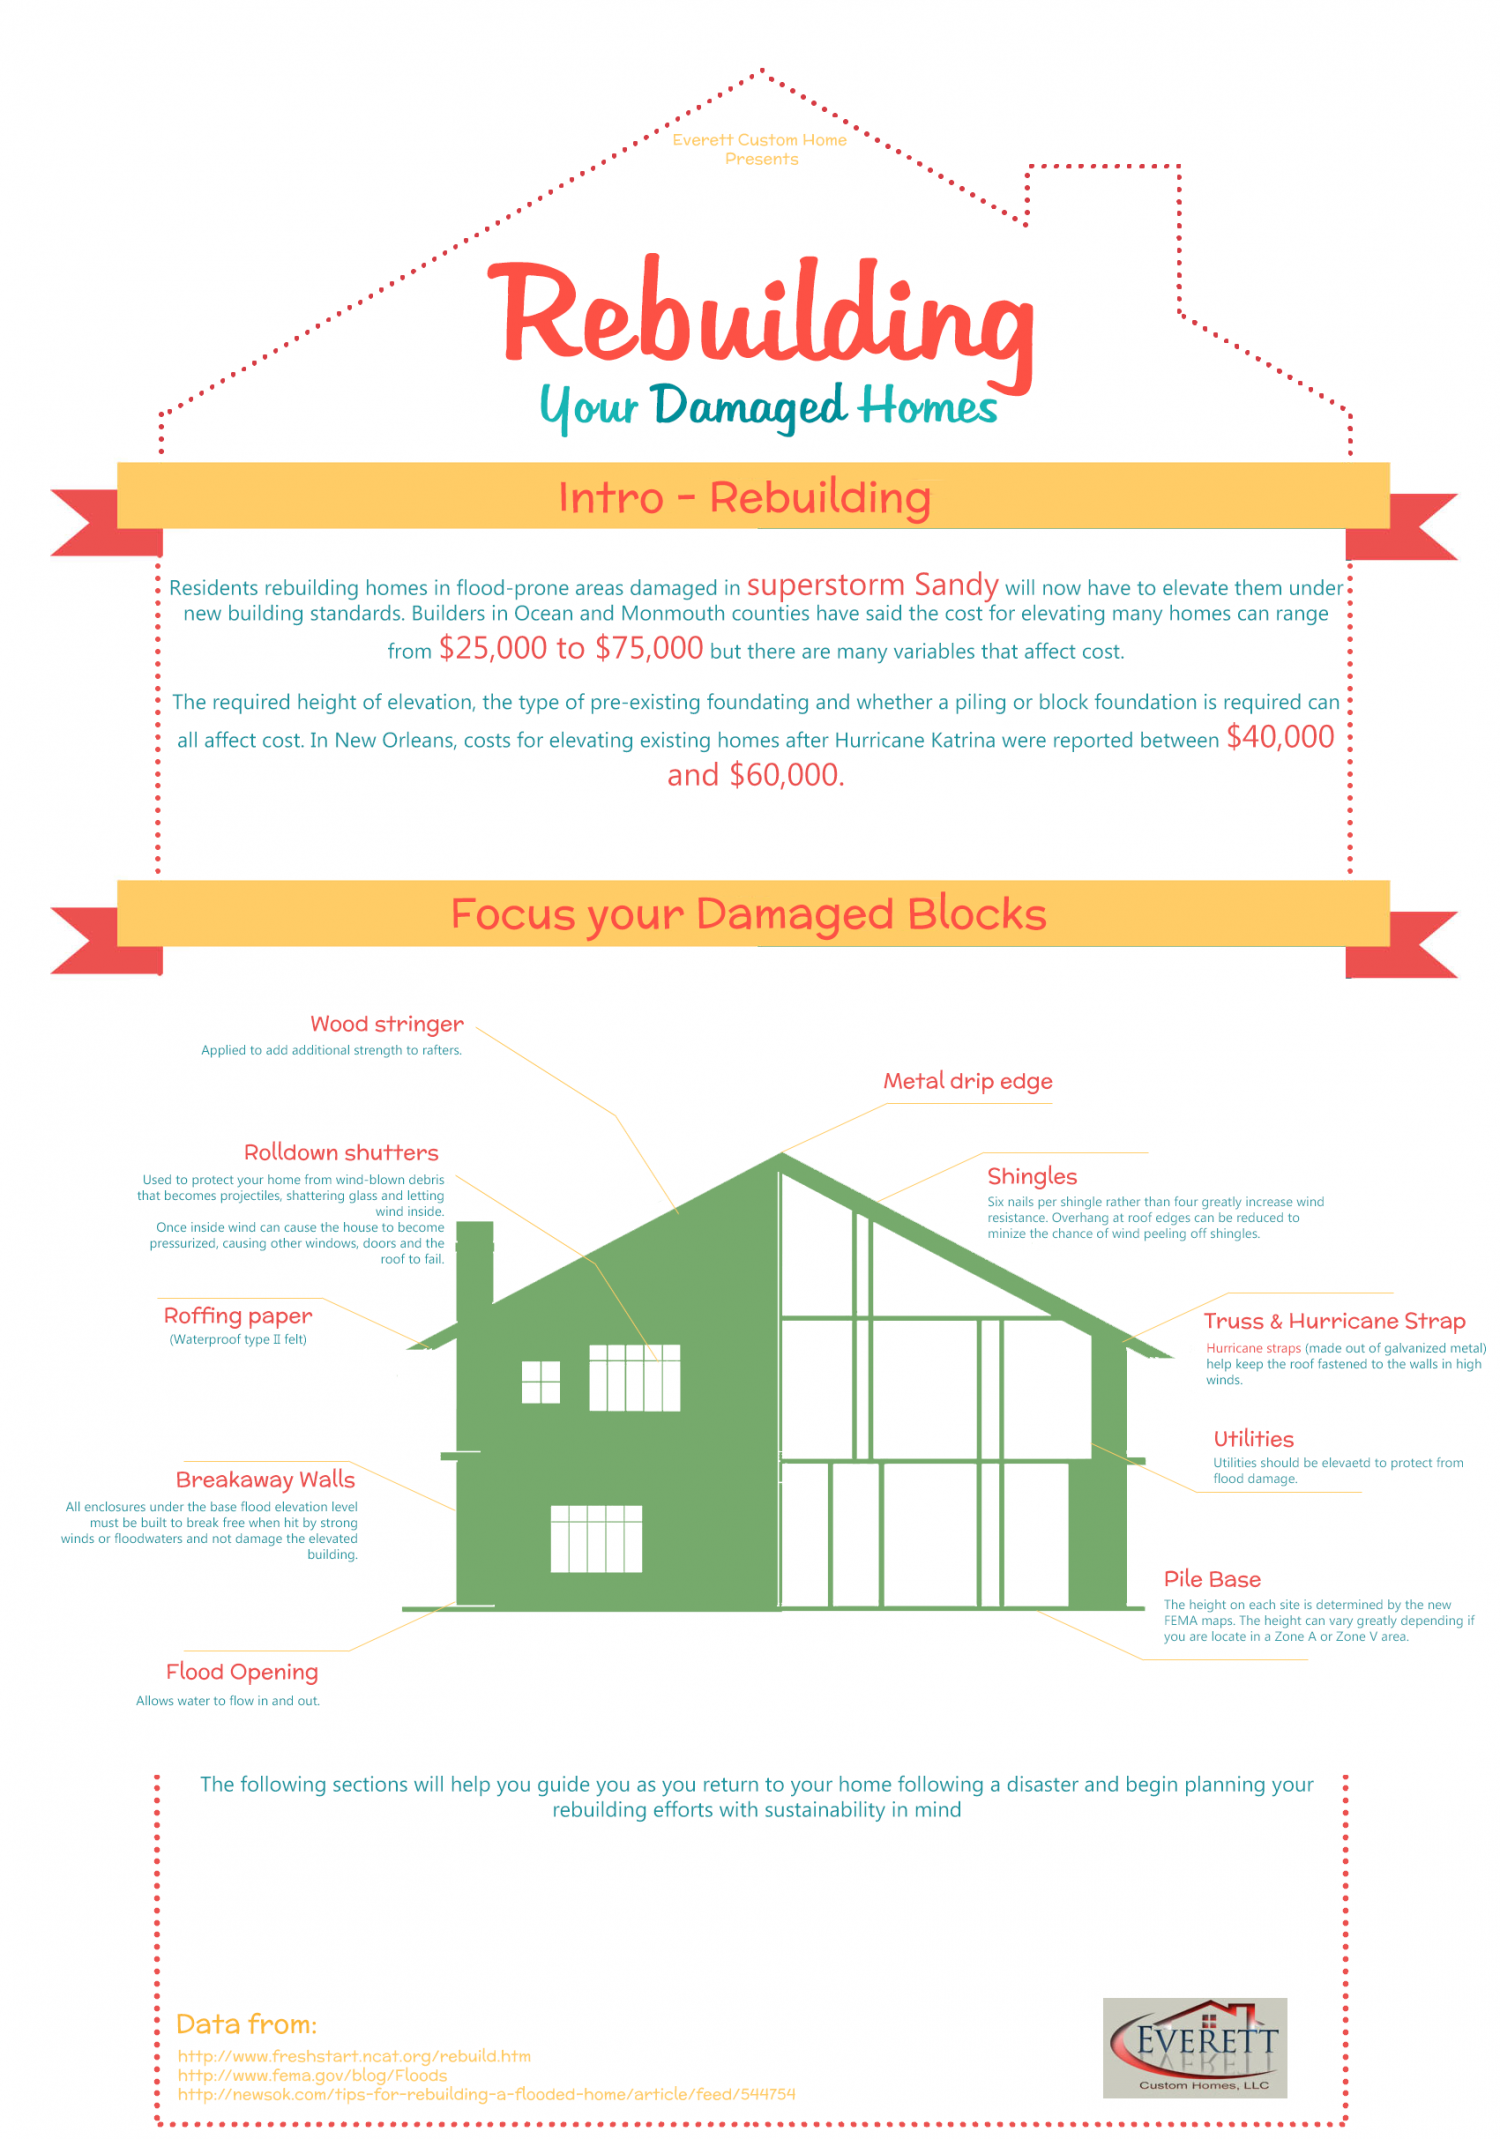 Rebuilding your Damaged Homes Infographic